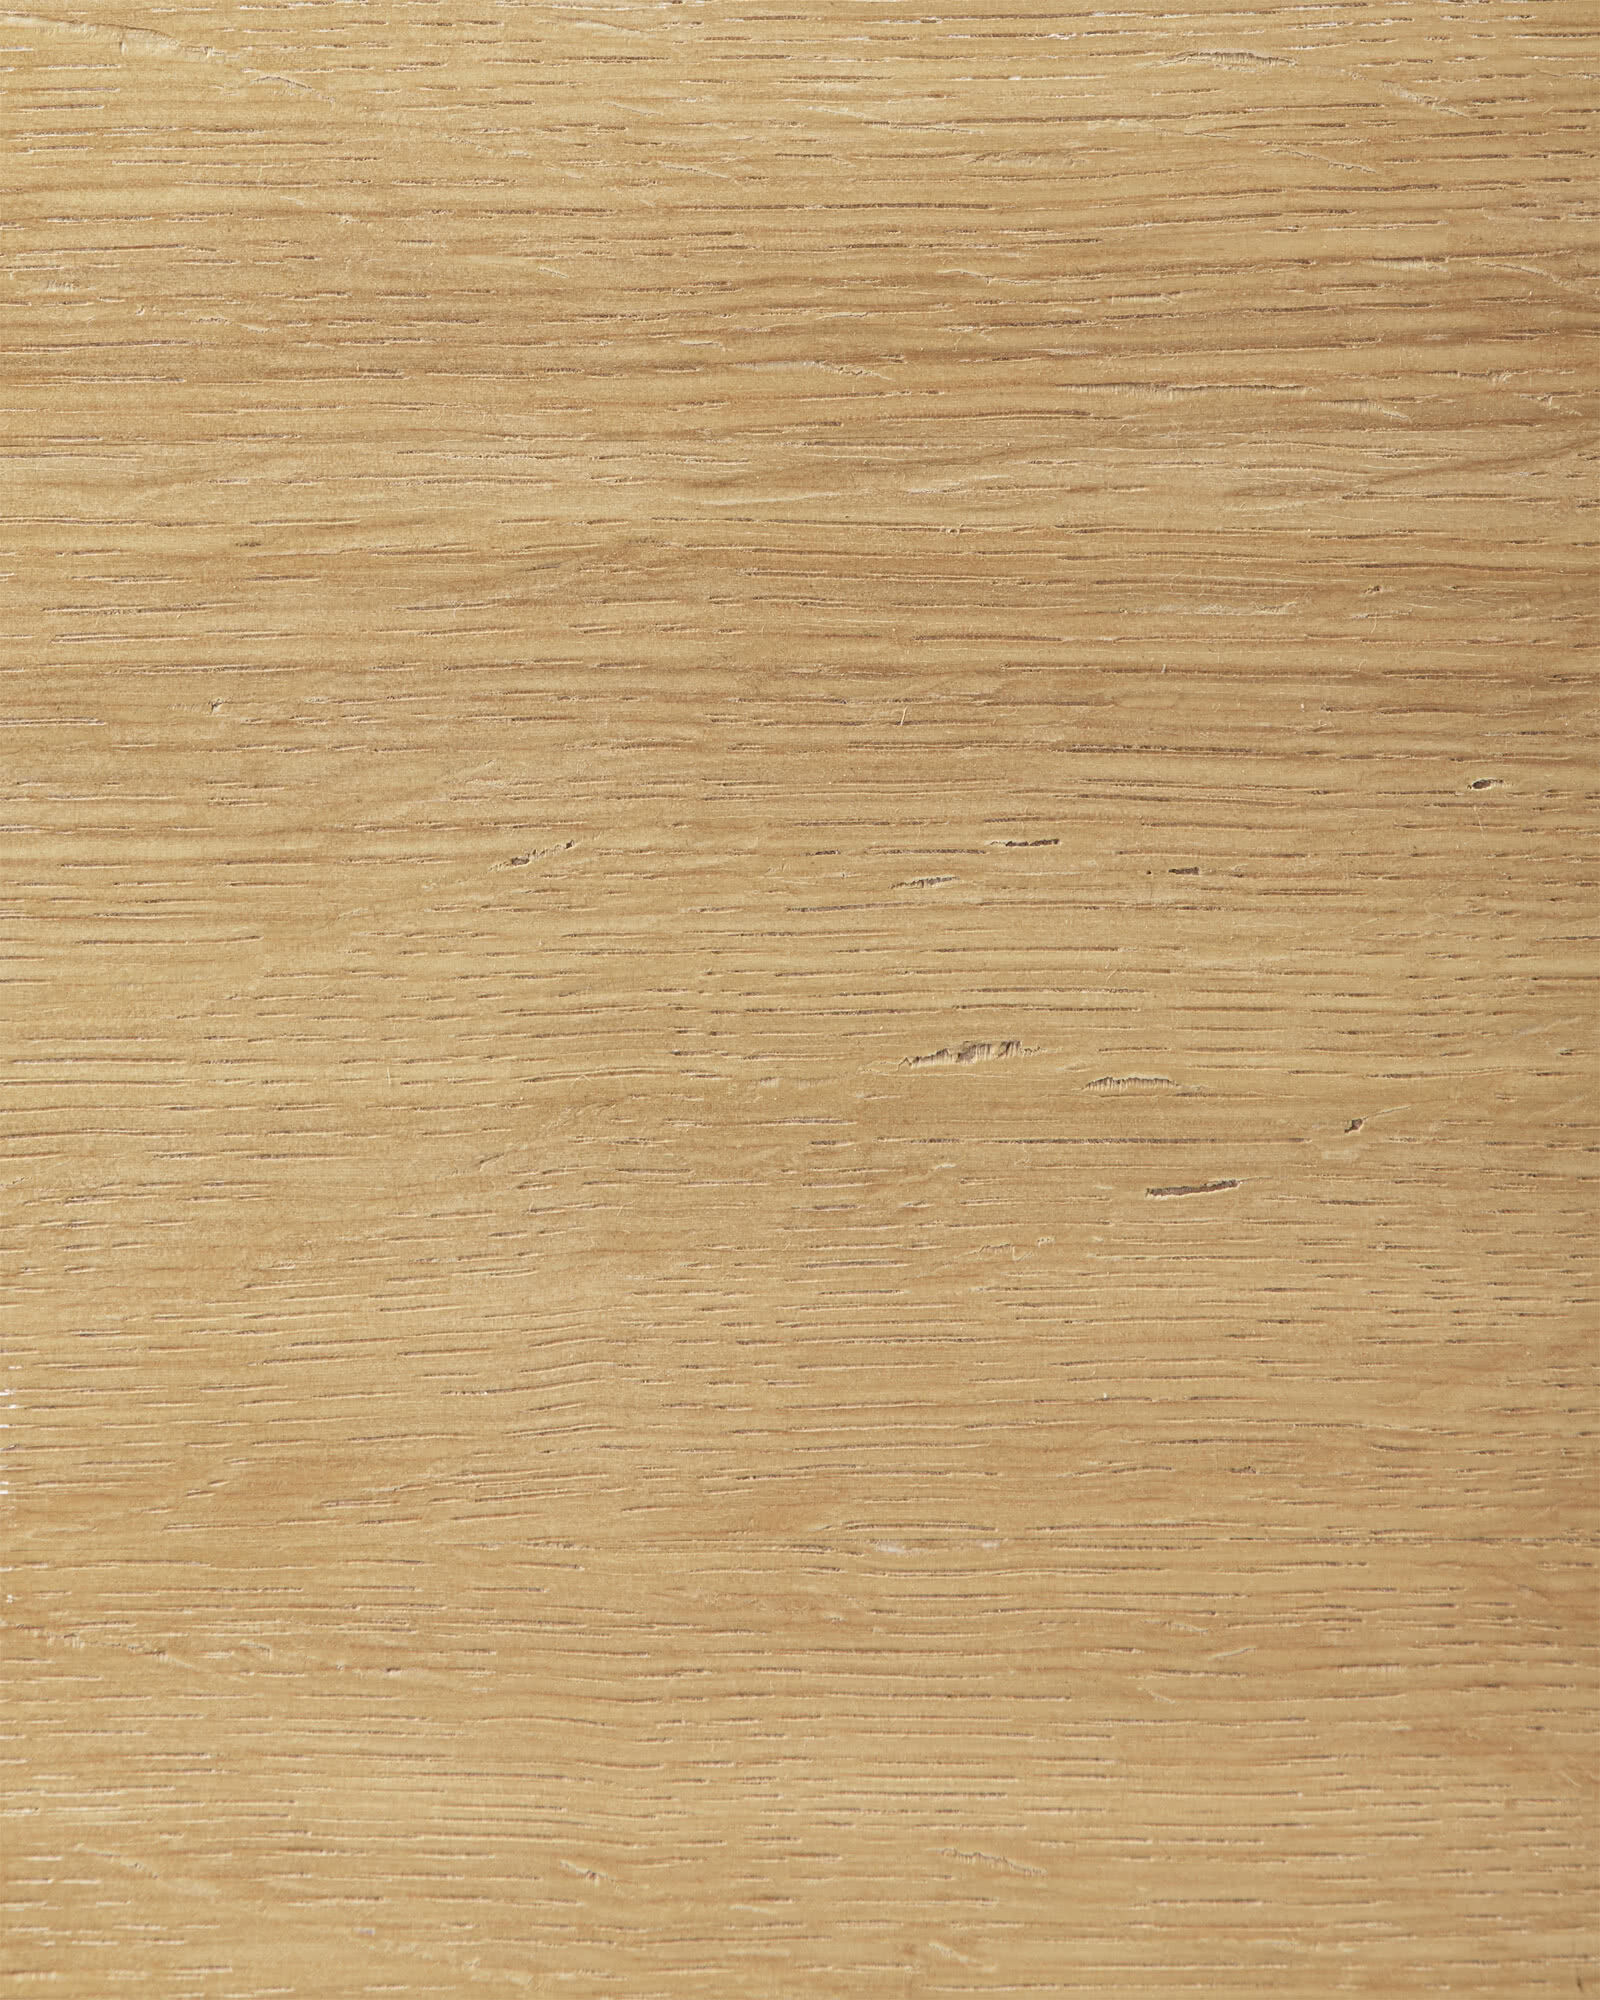 Reese Furniture Swatch,